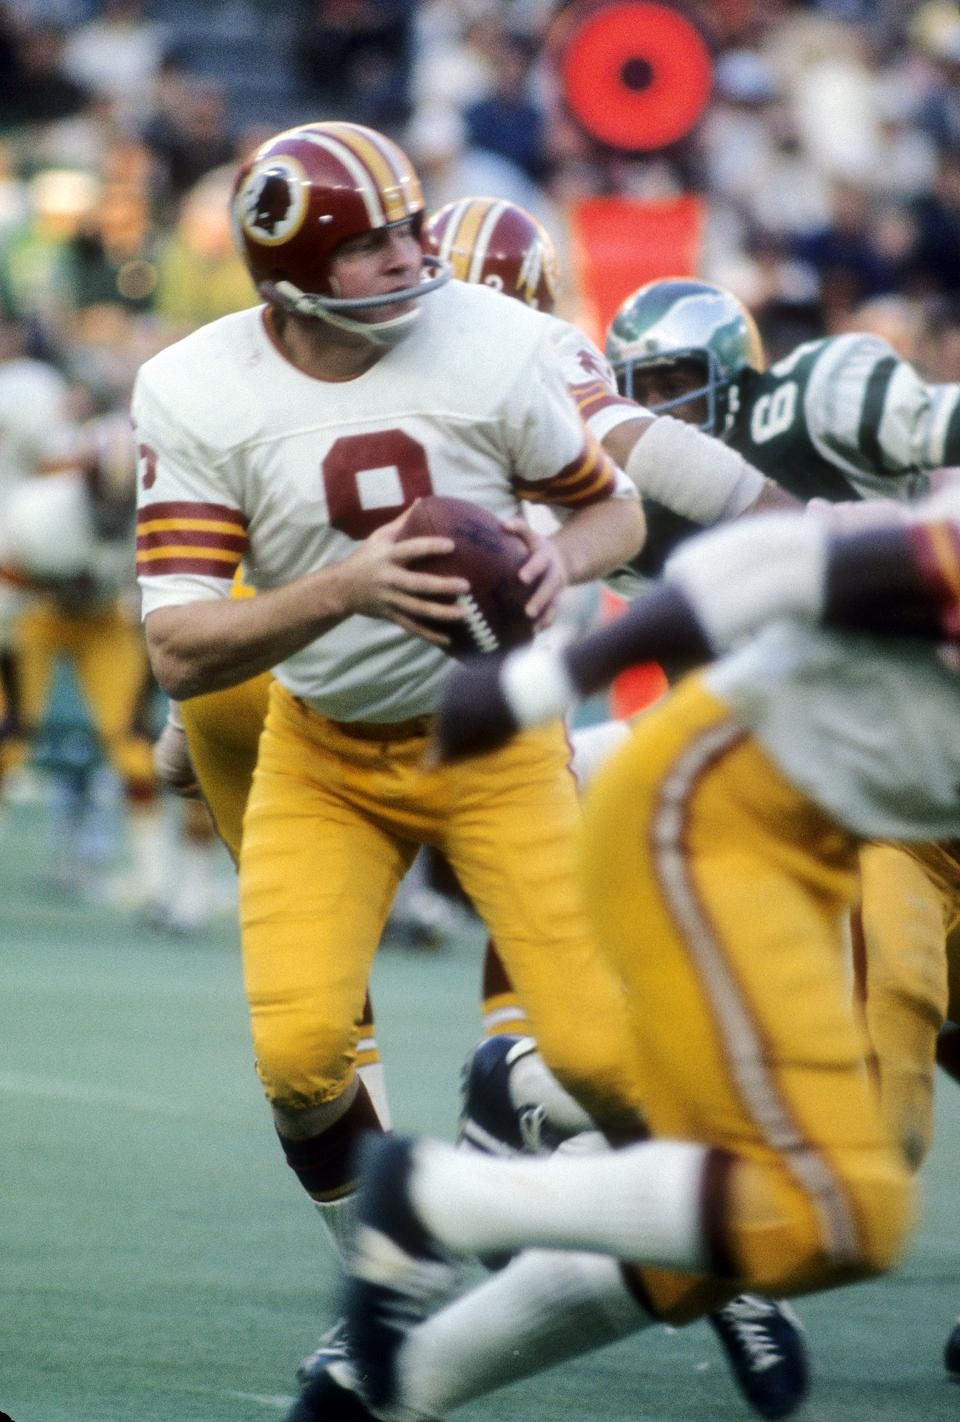 PHILADELPHIA, PA - CIRCA 1971:  Quarterback  Sonny Jurgensen #9 of the Washington Redskins drops back to pass against the Philadelphia Eagles during an NFL football game circa 1971 at Veterans Stadium in Philadelphia, Pennsylvania. Jurgenson played for the Redskins from 1964-74. (Photo by Focus on Sport/Getty Images)